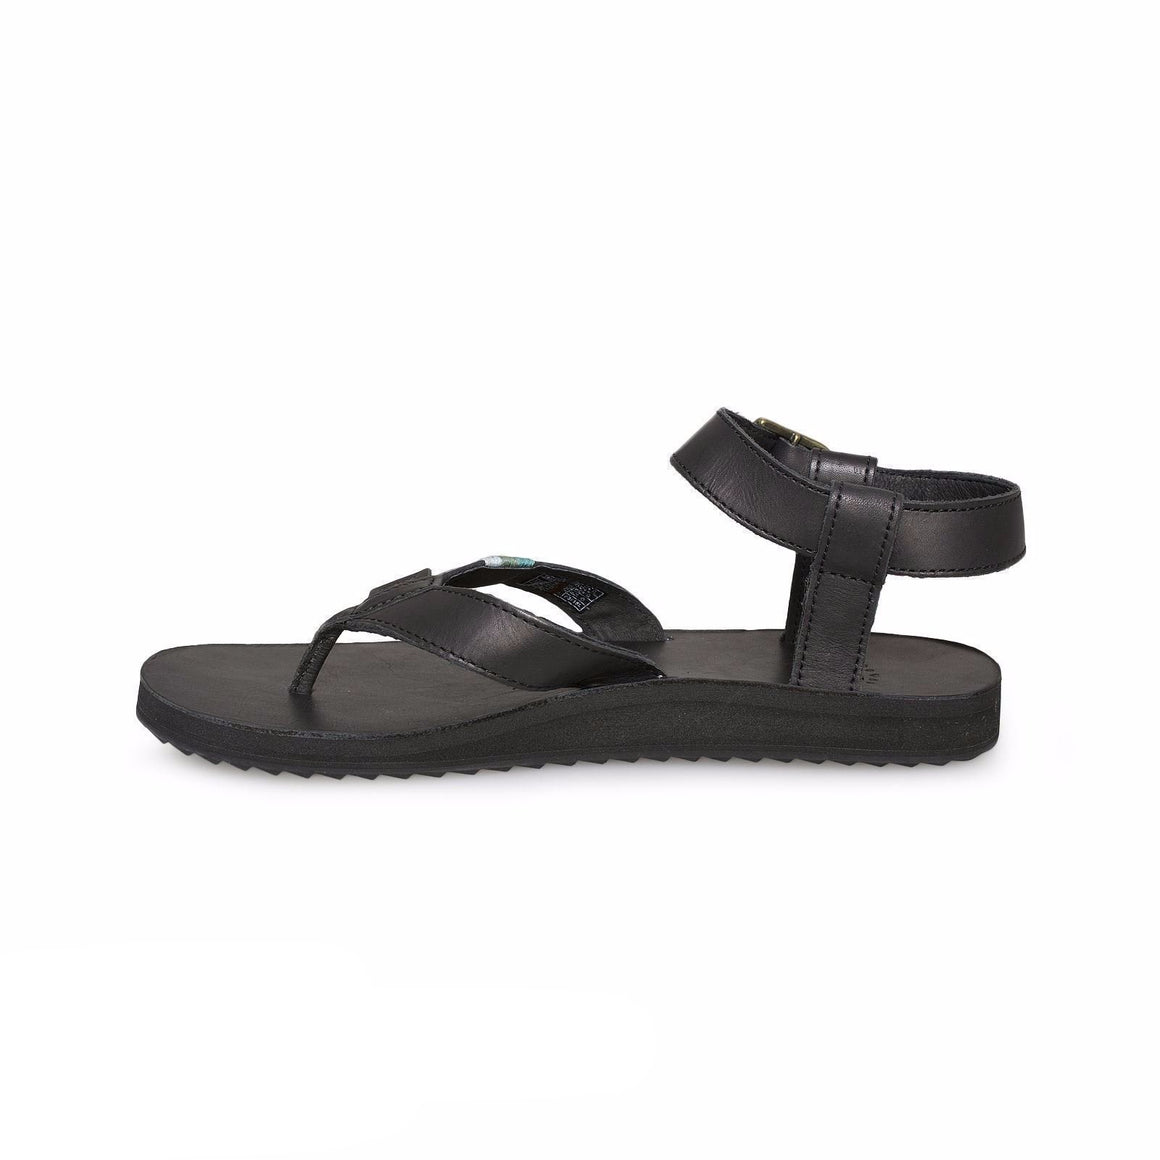 Teva Original Crafted Leather Black Sandal